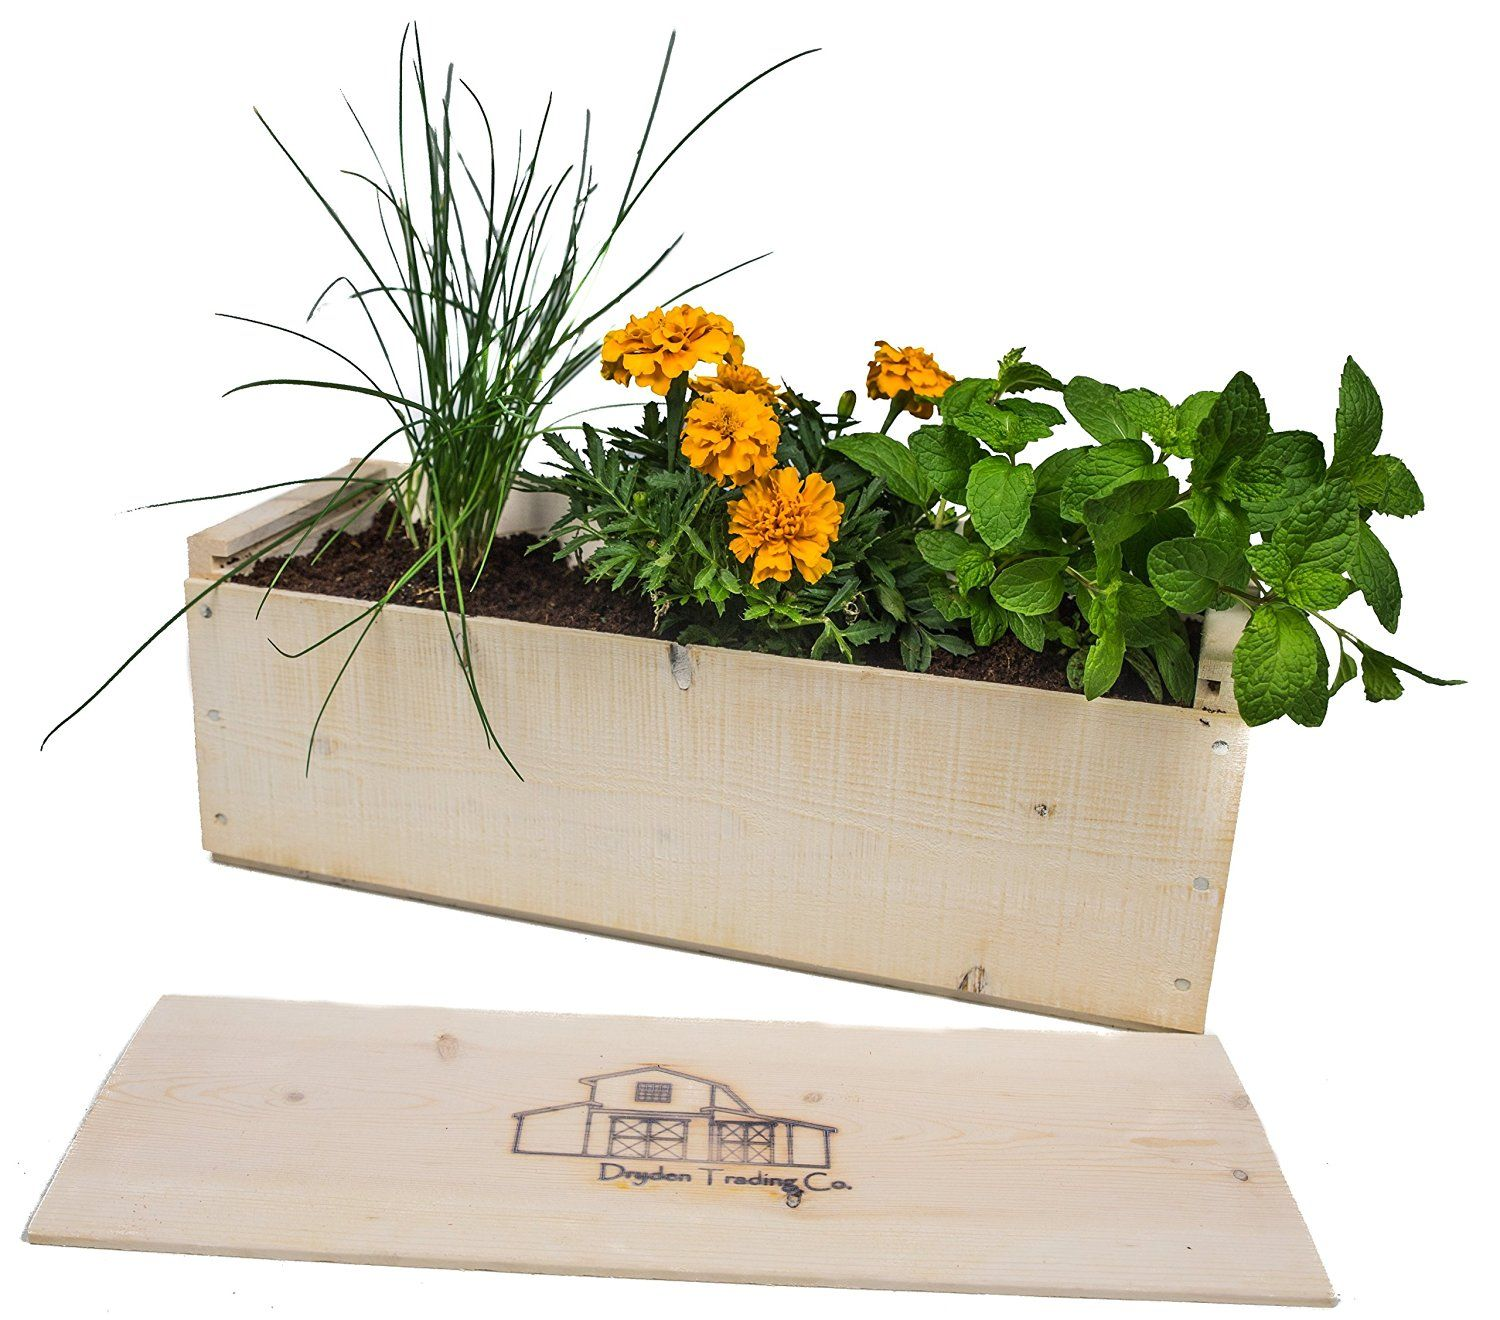 amazon : indoor herb garden planter box kit with basil